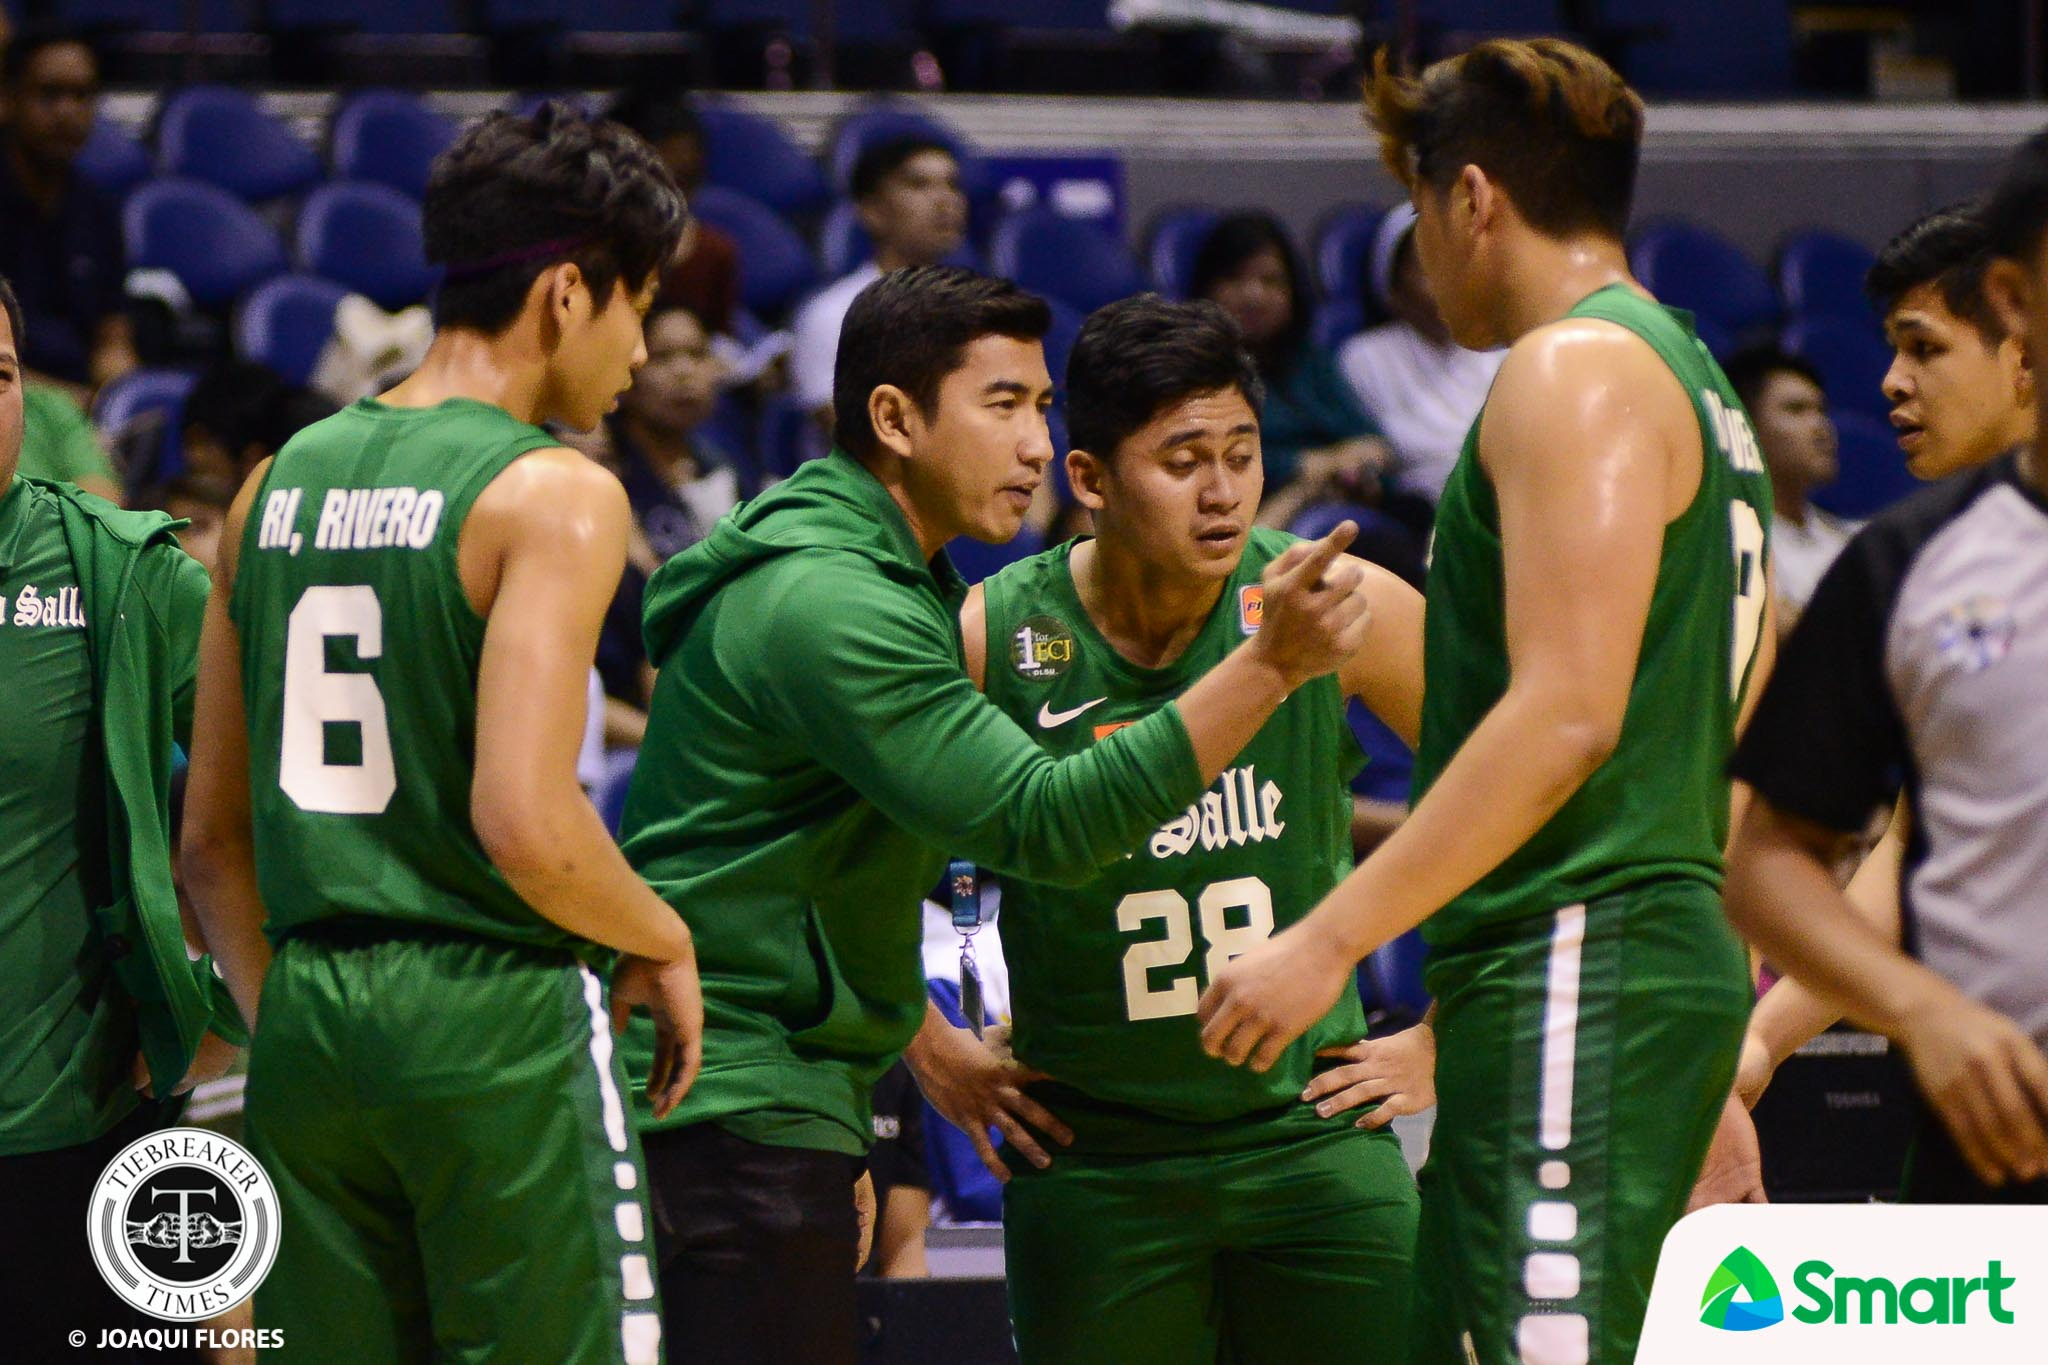 Philippine Sports News - Tiebreaker Times La Salle formally appoints Louie Gonzalez as Green Archers head coach Basketball DLSU News UAAP  UAAP Season 81 Men's Basketball UAAP Season 81 Louie Gonzalez DLSU Men's Basketball Aldin Ayo